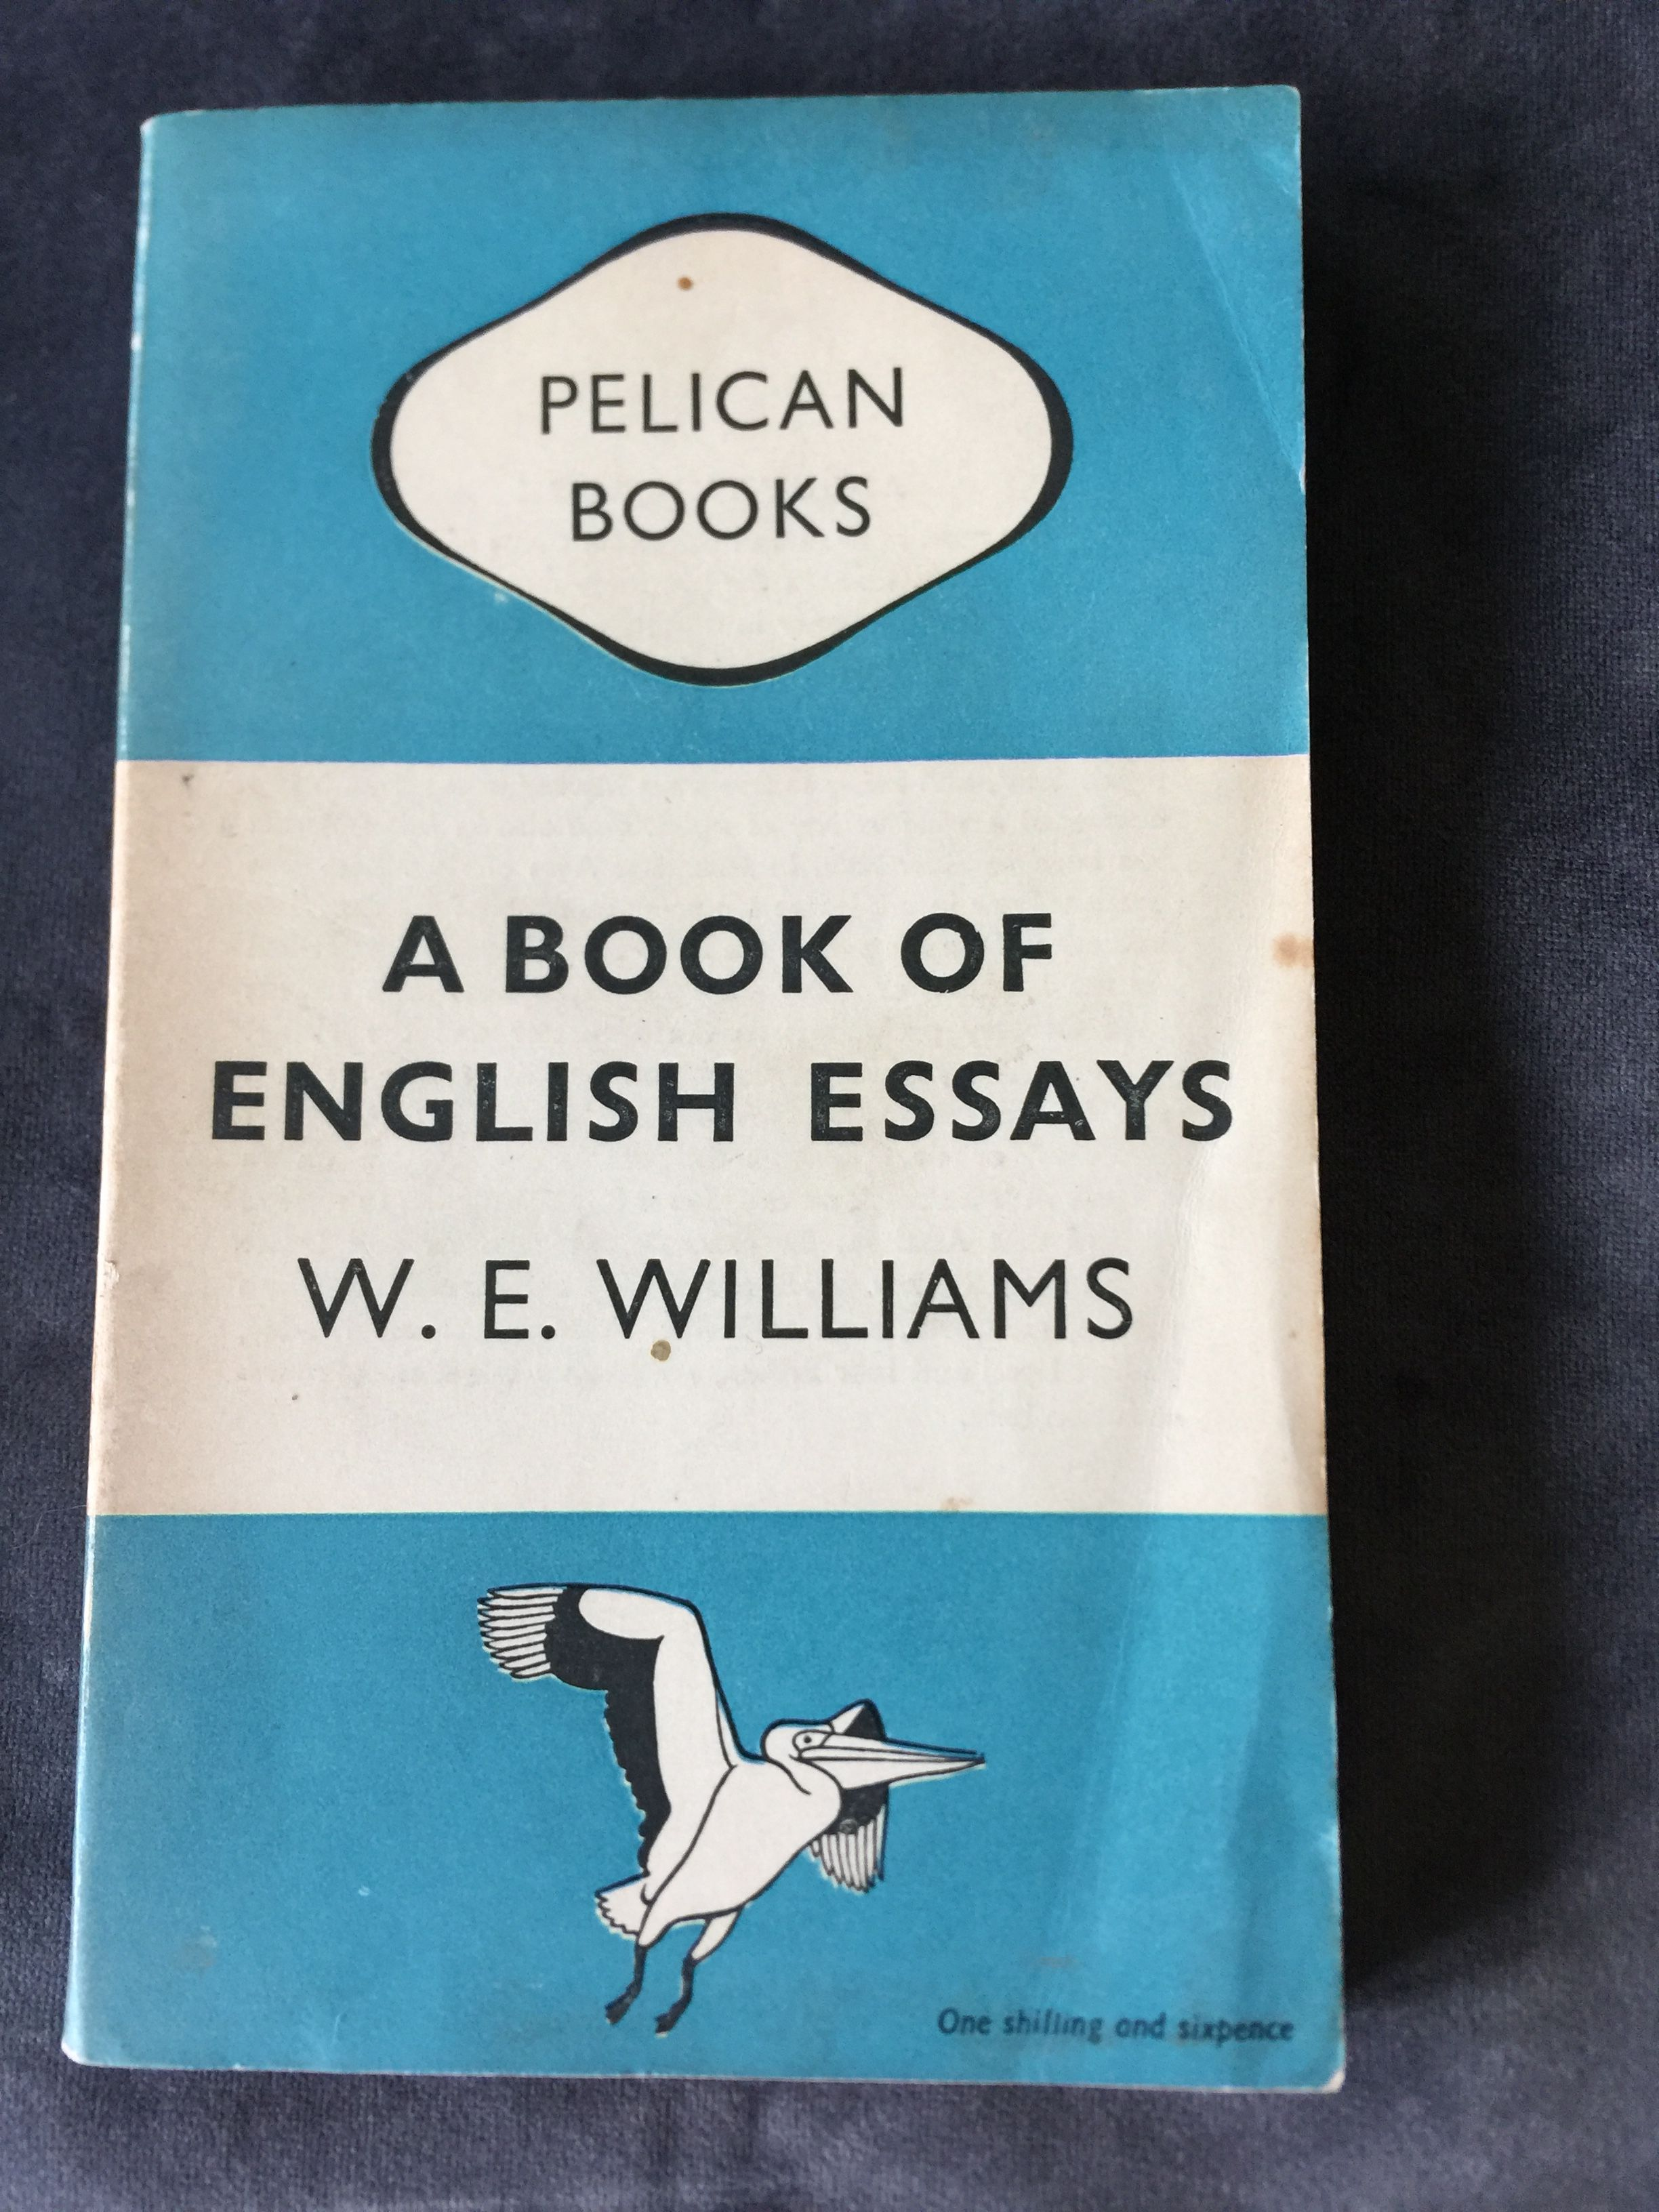 Essay On Our Constitution  English Essays also Hunters In The Snow Essay W E Williams A Book Of English Essays Pelican Books  A  Multitasking Essay